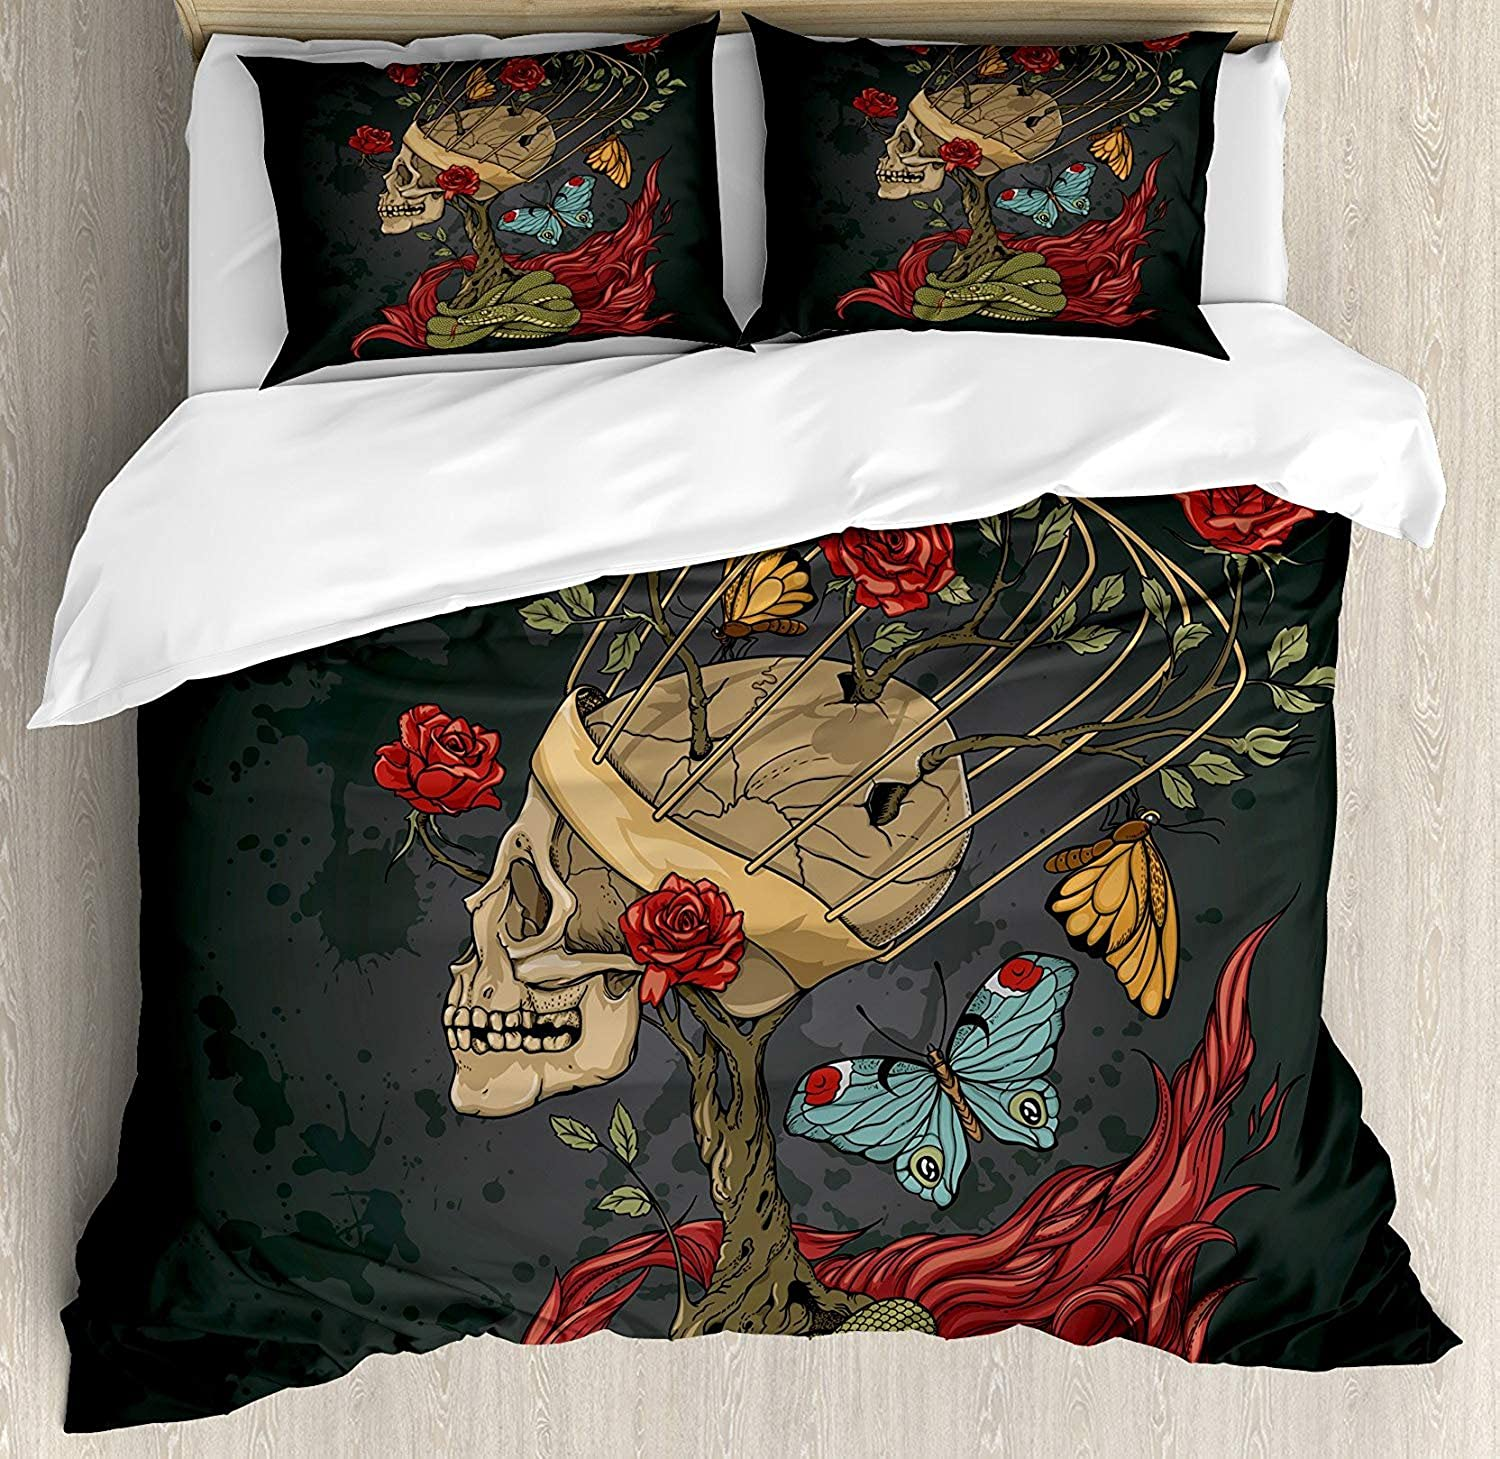 OneHoney Skull Ultra Soft 4 Pieces Bedding Sets, Evil Mexican Sugar Skeleton with Kitsch Bush of pinks Snake and Butterfly Artwork, Luxury Decorative Bedspread Duvet Cover Set, Ruby Dark Grey